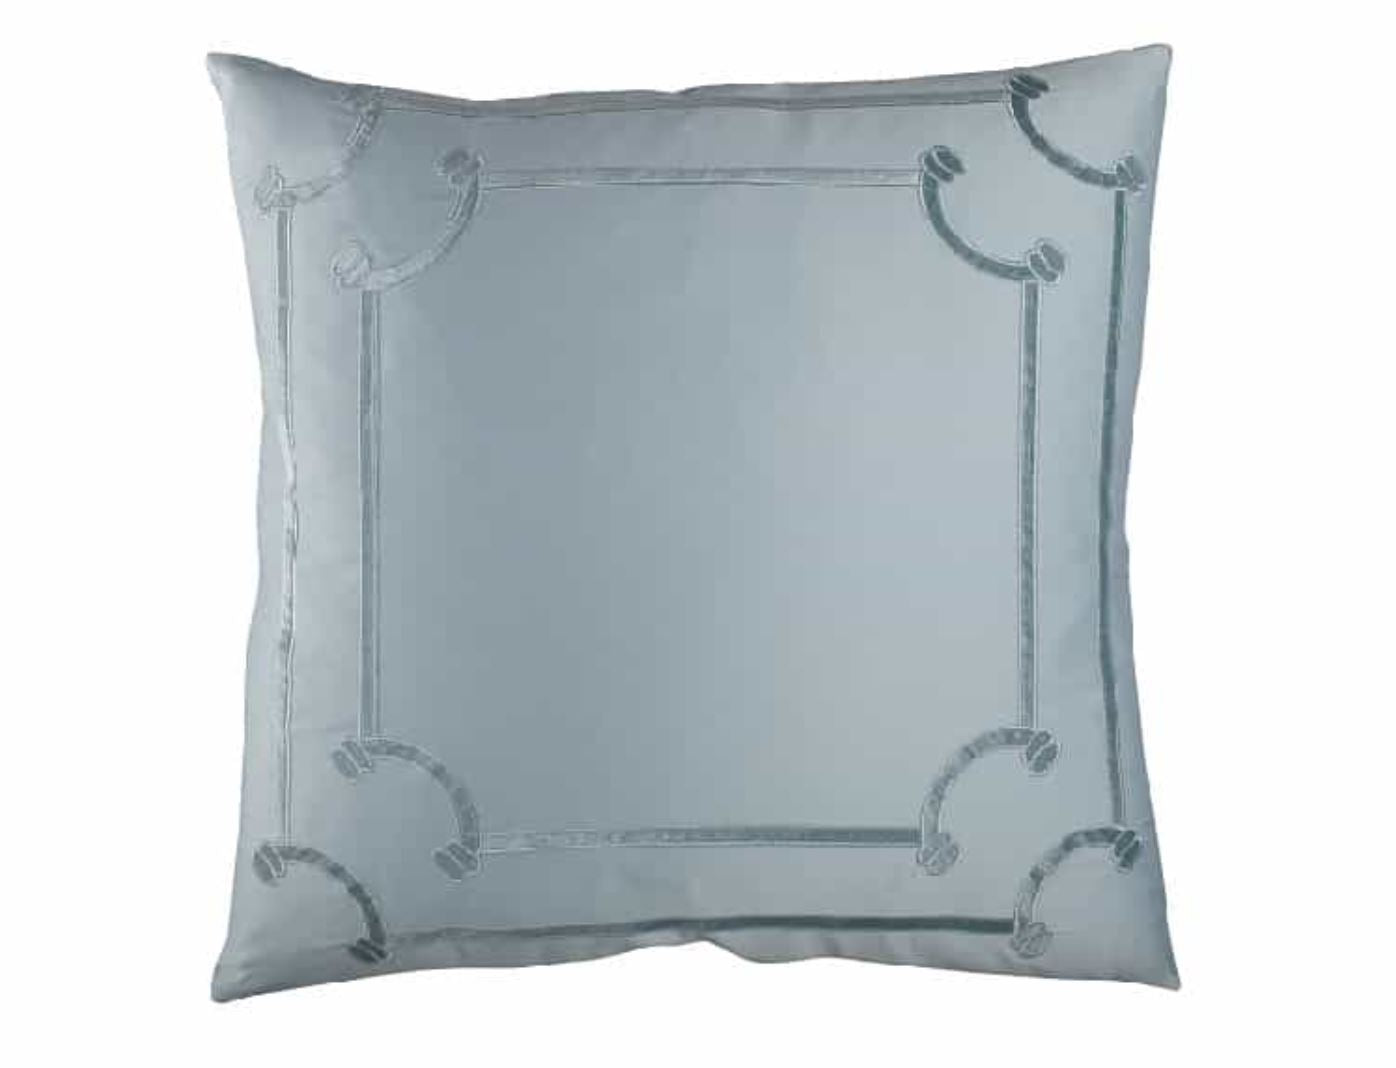 Lili Alessandra Vendome Sea Foam Euro Pillow